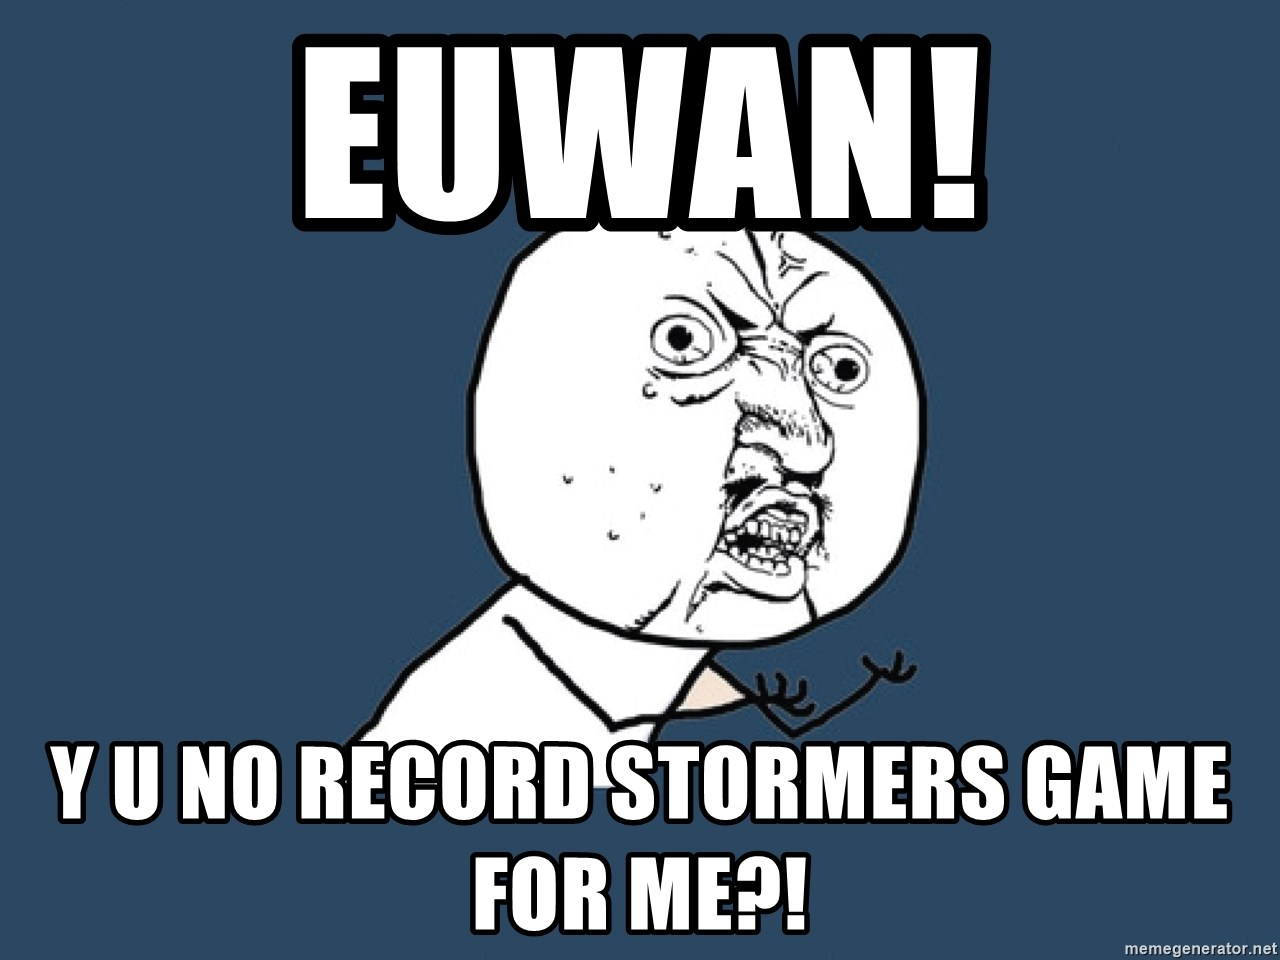 Y U No - Euwan!  Y u no record stormers game for me?!